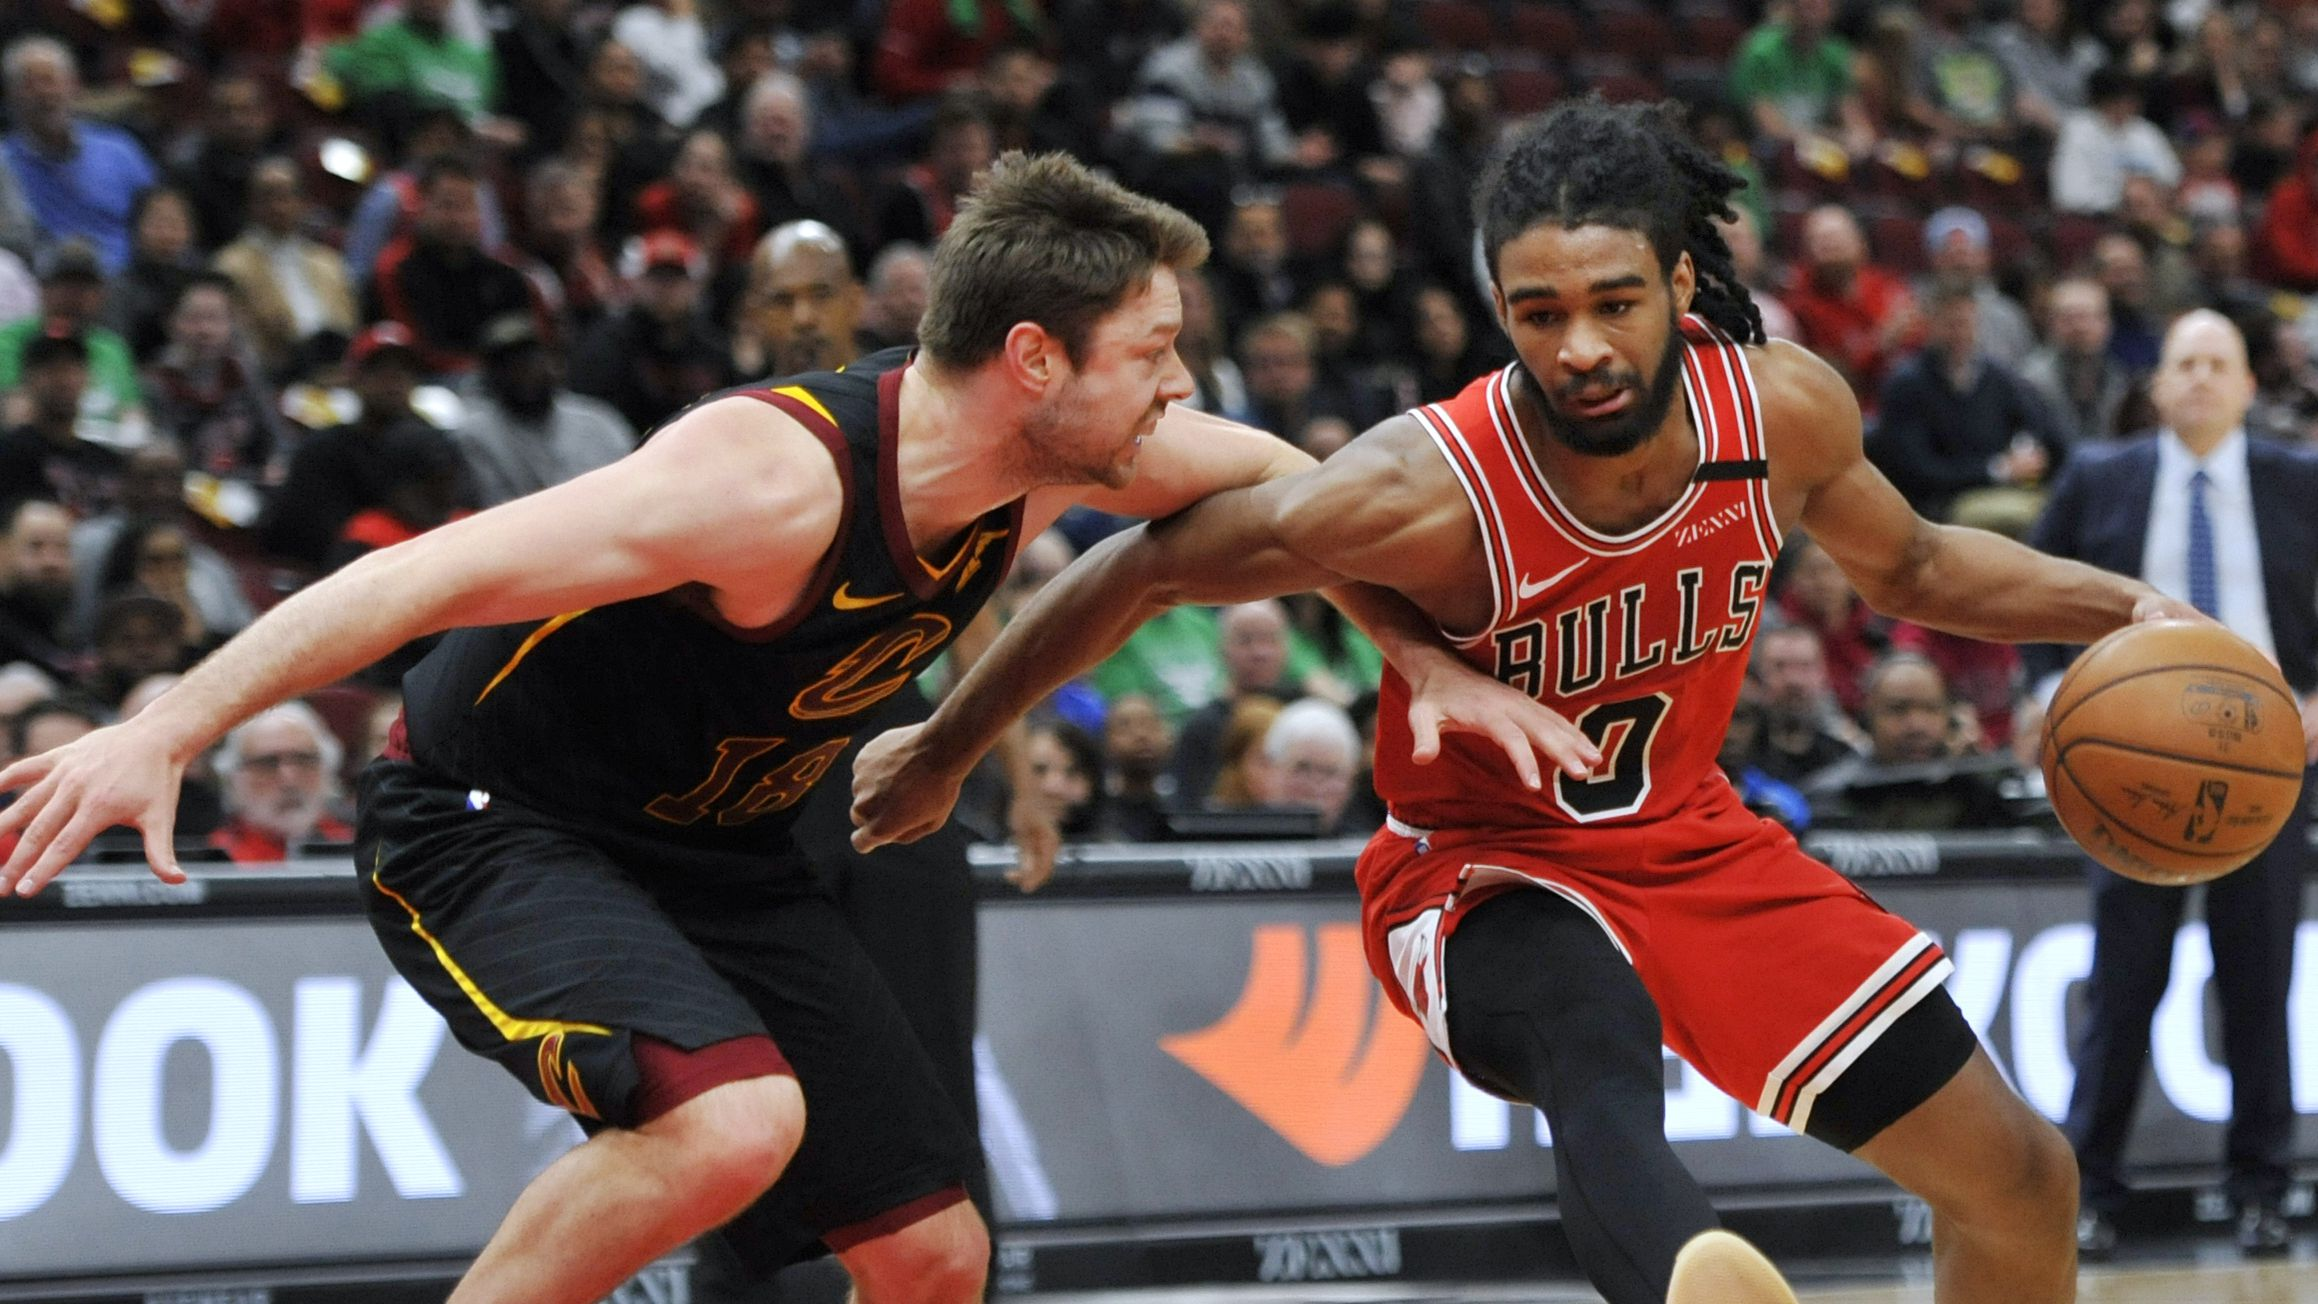 White scores 20, commits 9 TOs, Bulls beat Cavaliers 108-103